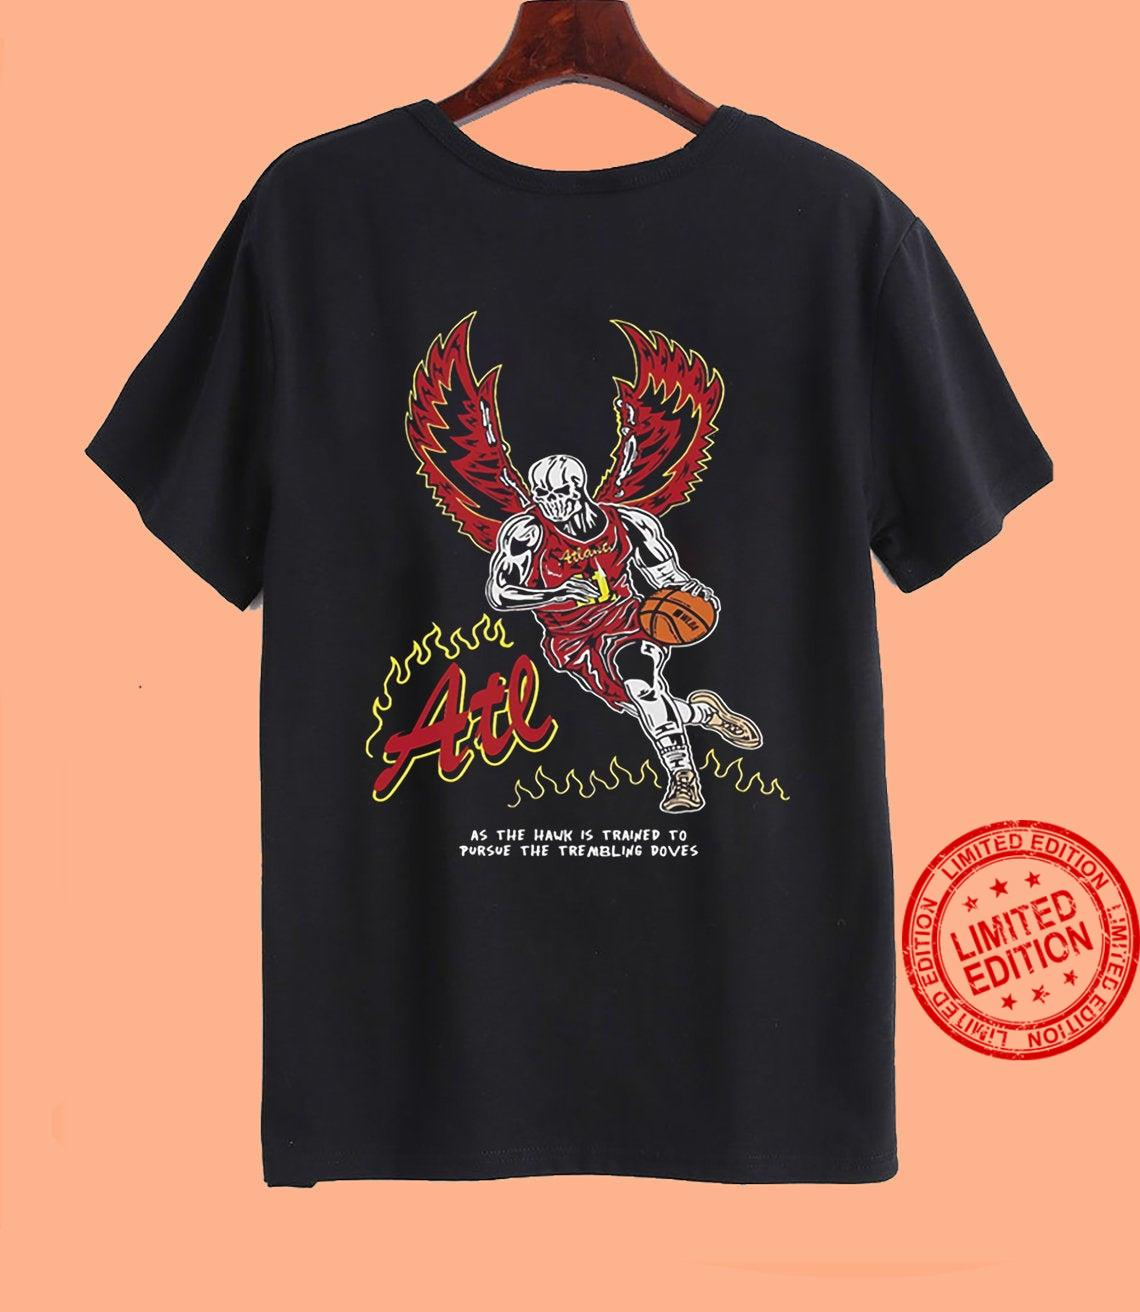 Warren Lotas As The Hawk Is Trained To Pursue The Trembling Doves Shirt